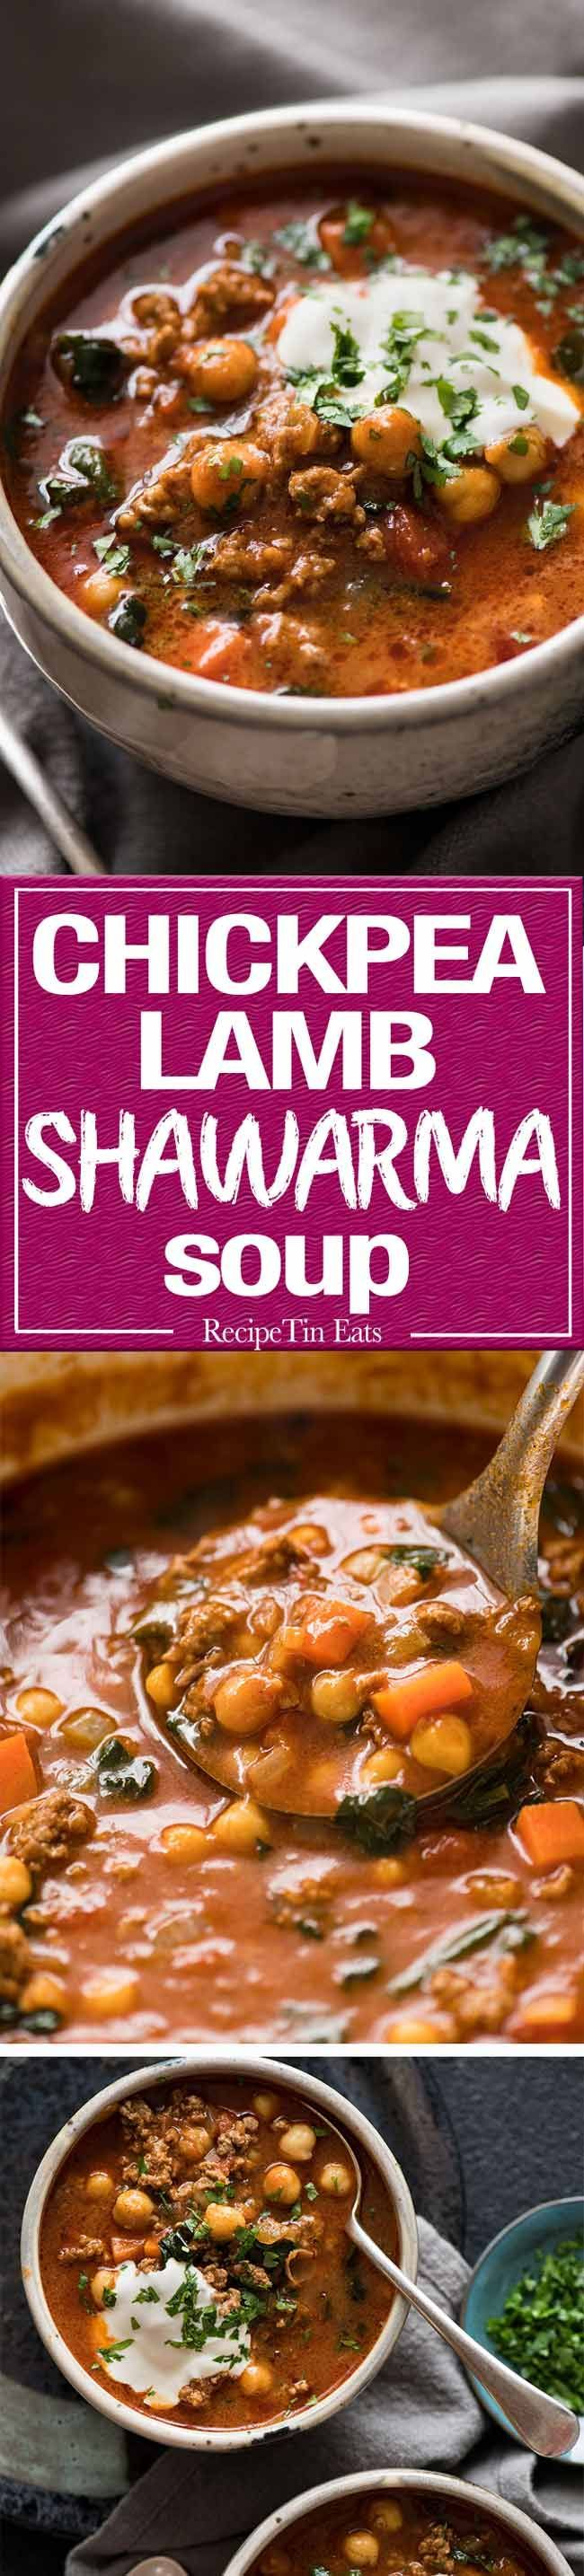 A chickpea soup exploding with flavour! Tastes like Chicken Shawarma in soup form with lamb, quick to make, nutritious and filling.